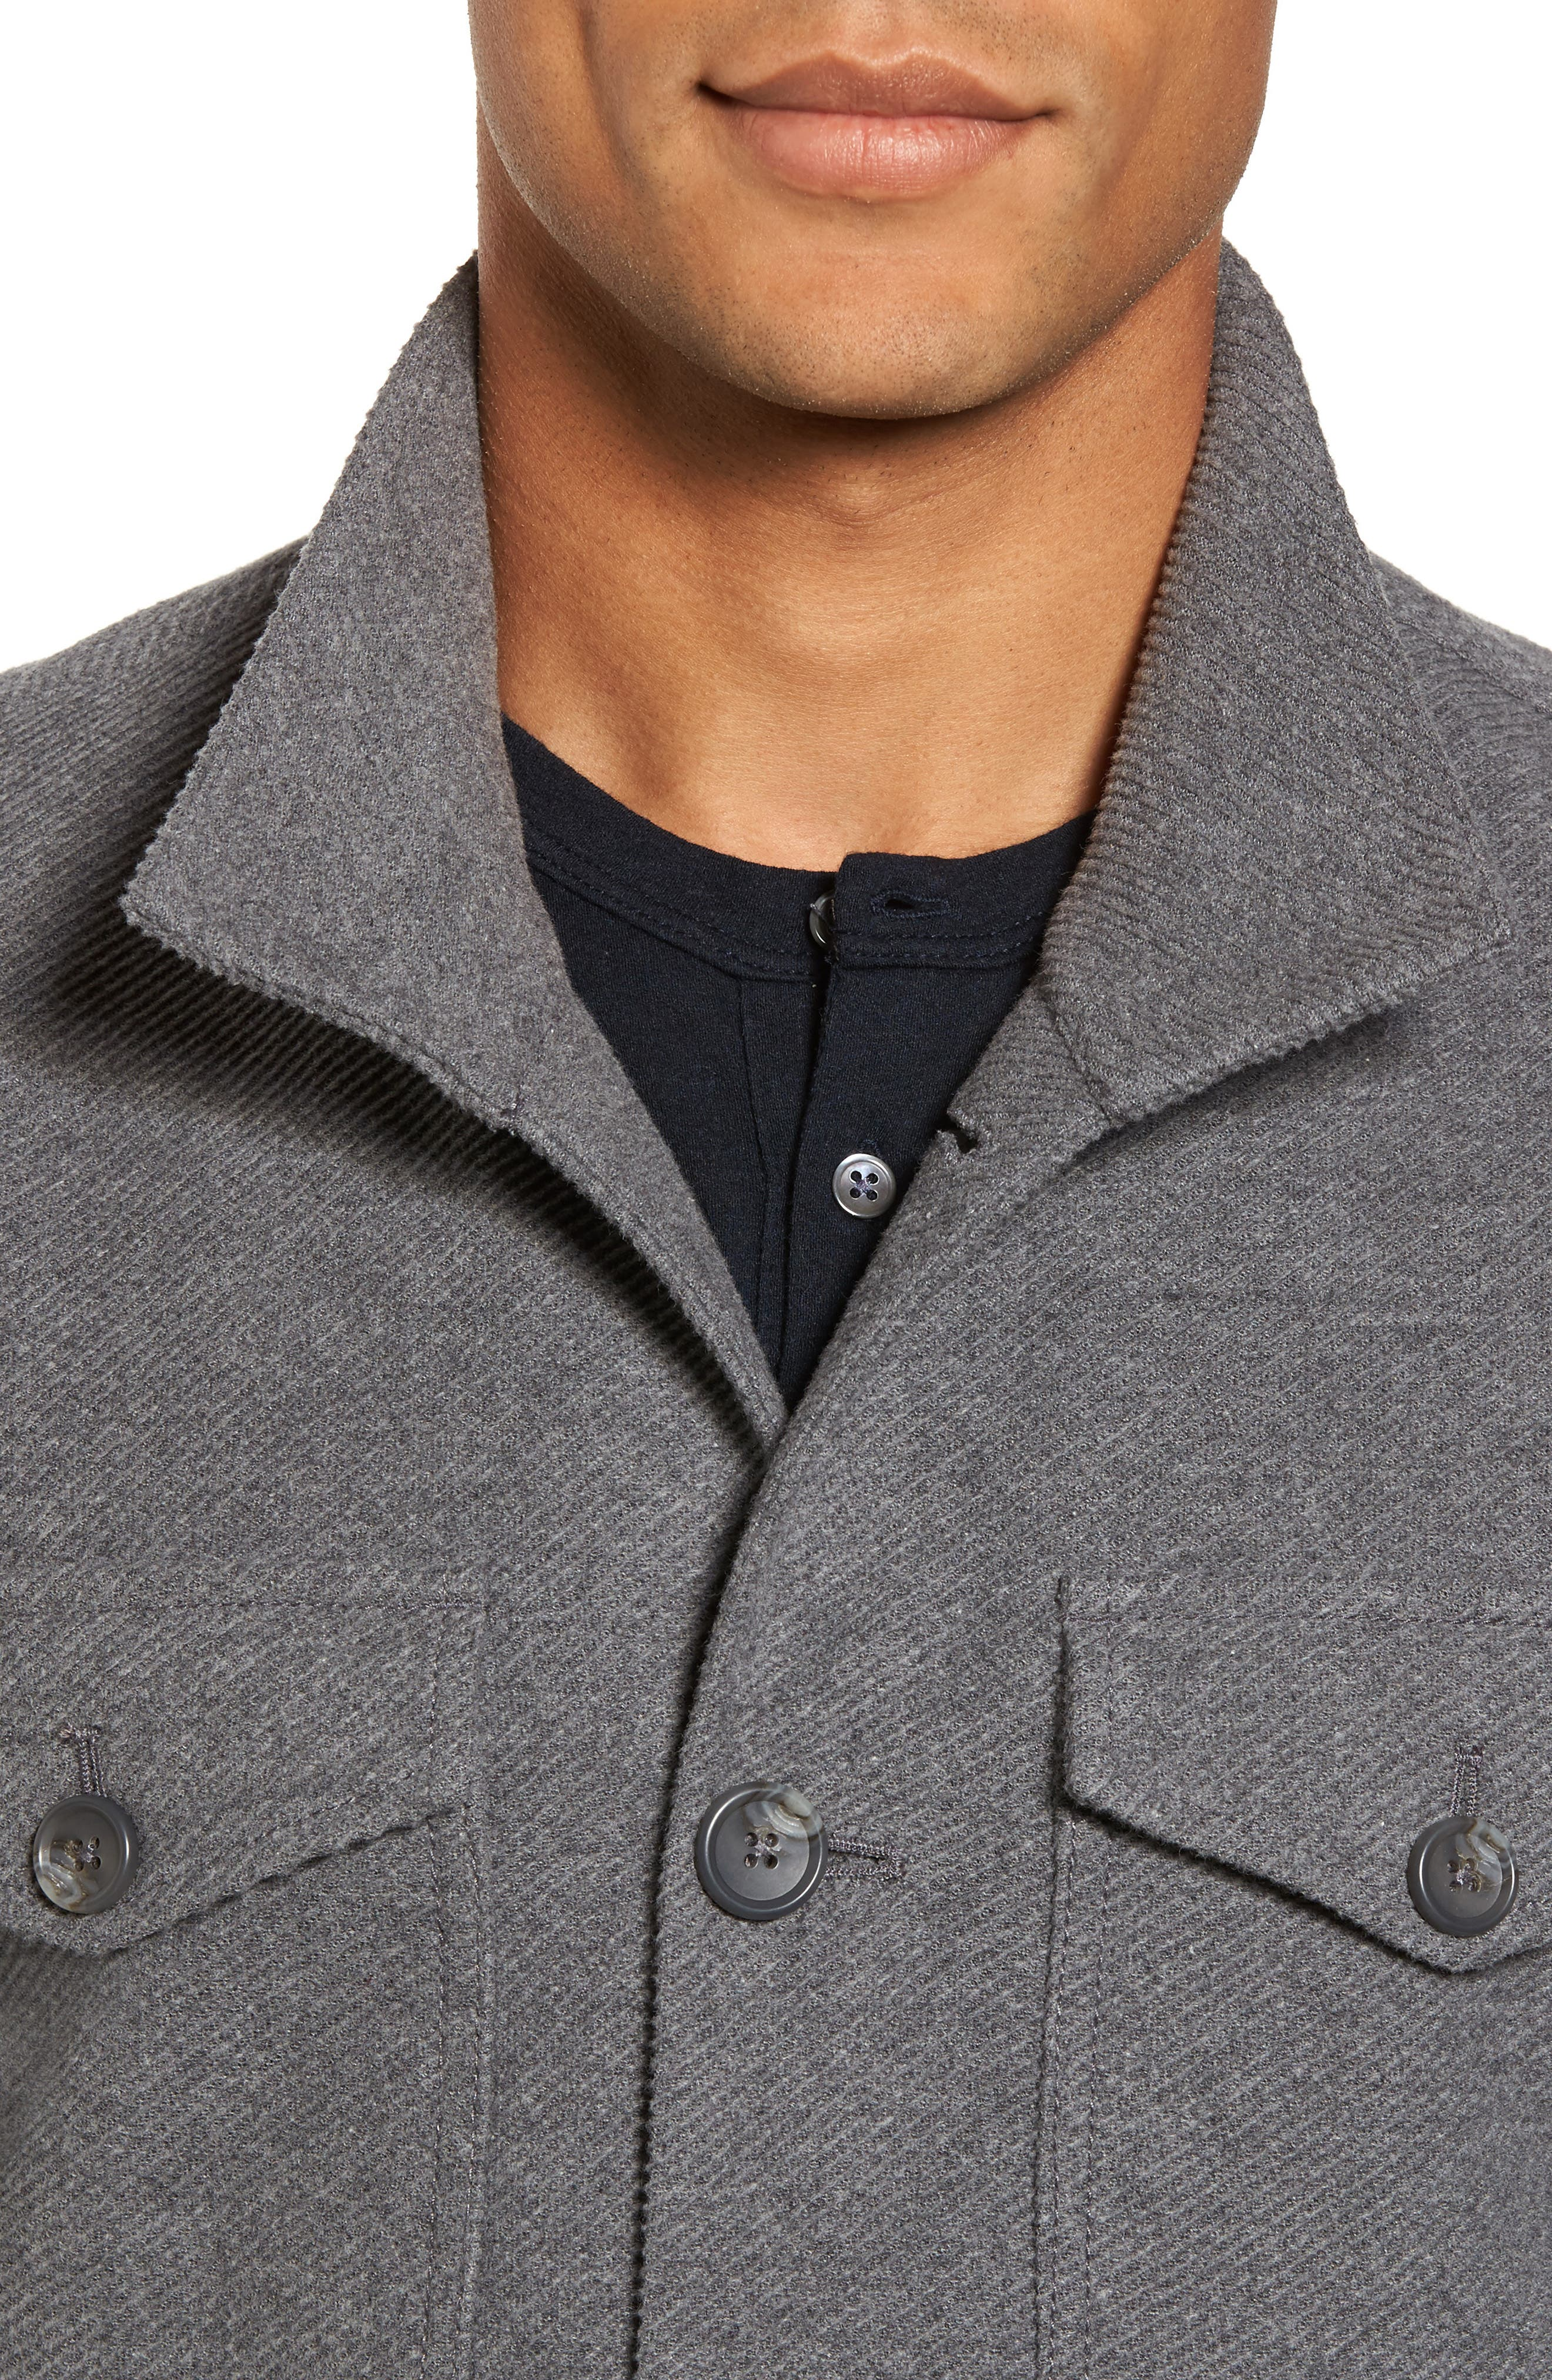 Drill Button Front Knit Jacket,                             Alternate thumbnail 4, color,                             Heather Charcoal